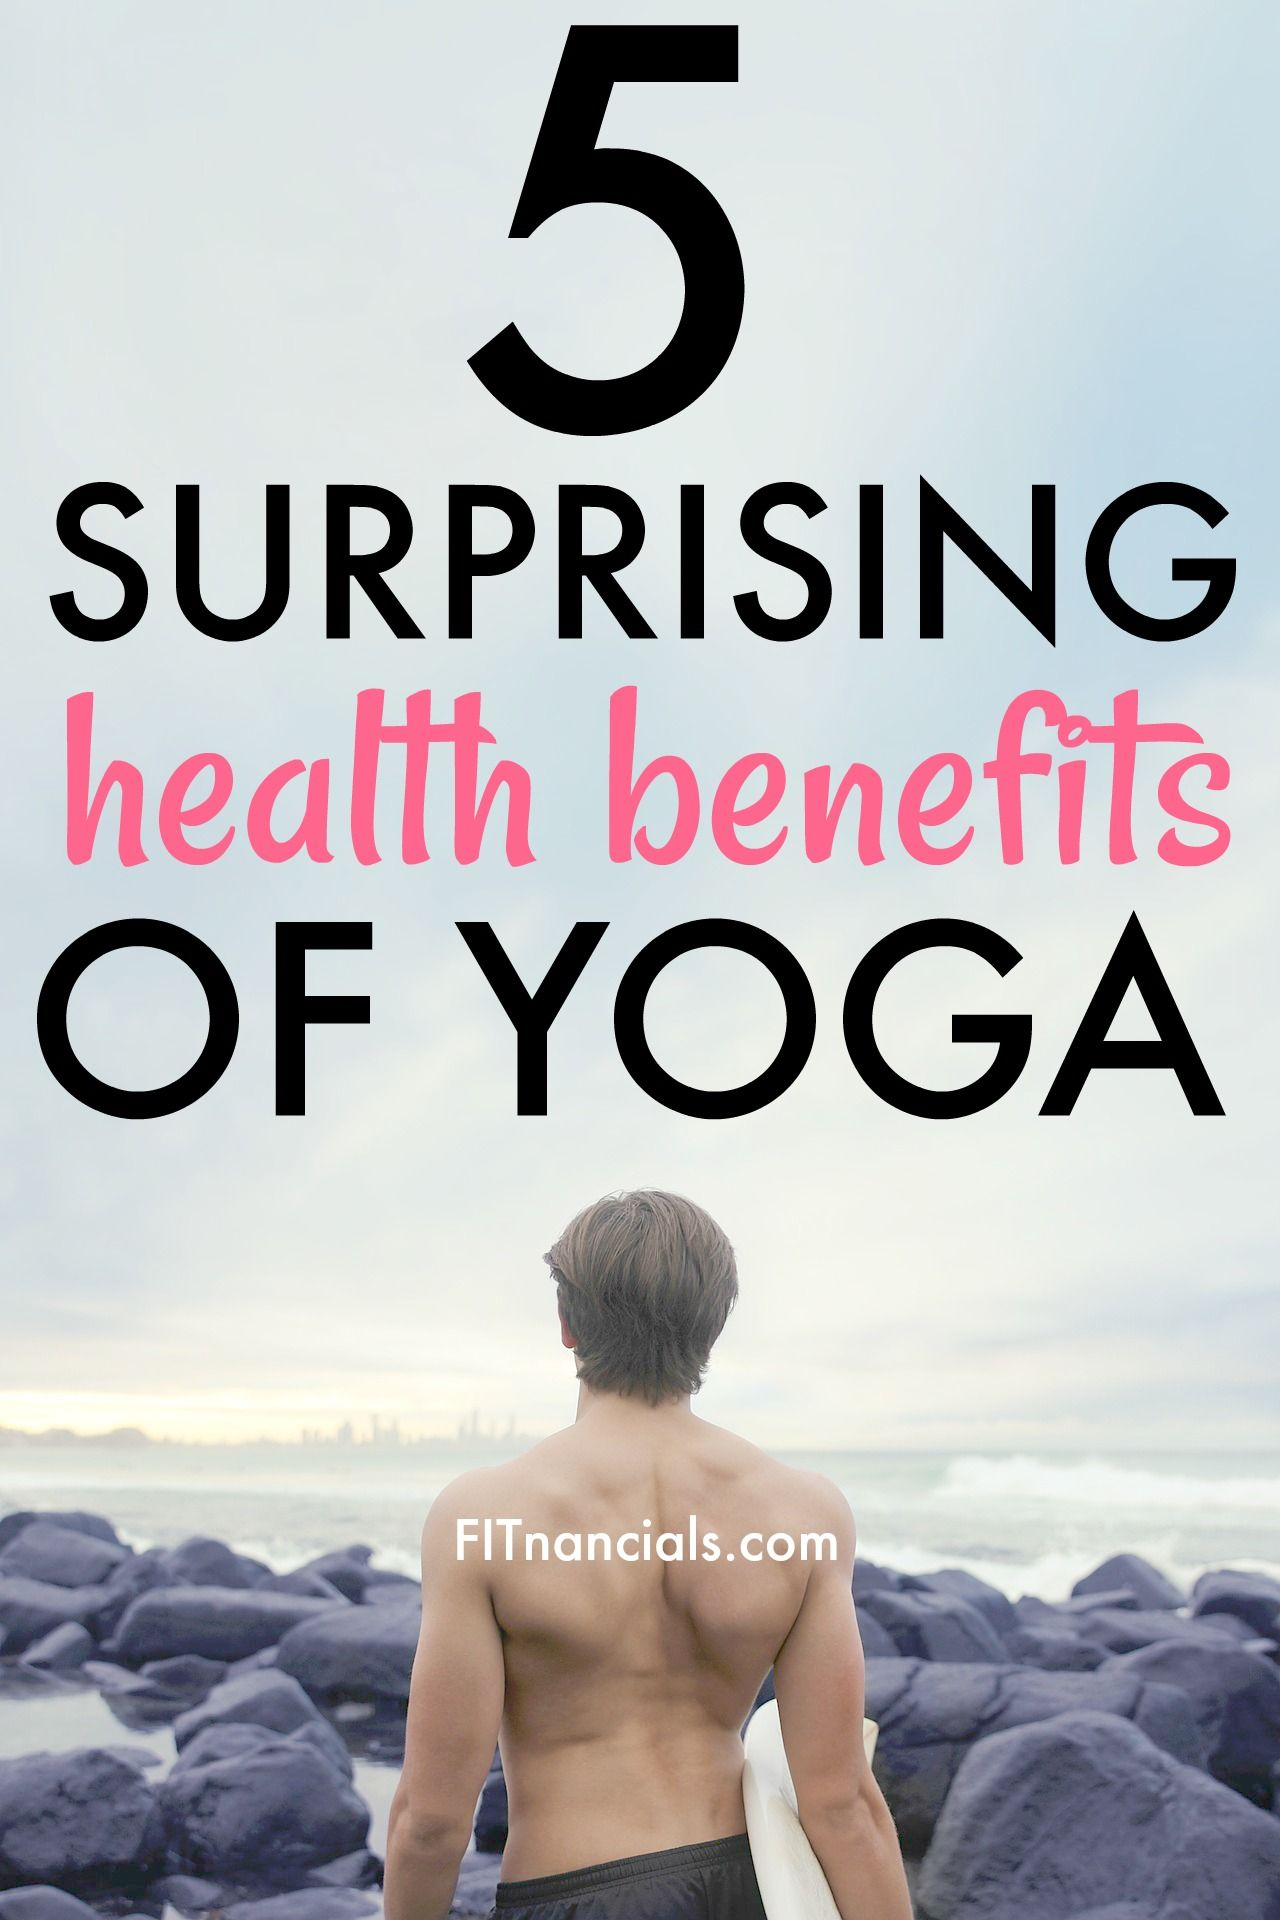 Check out these 5 surprising health benefits of yoga. Yoga does so much good for the body. This is such a great list.